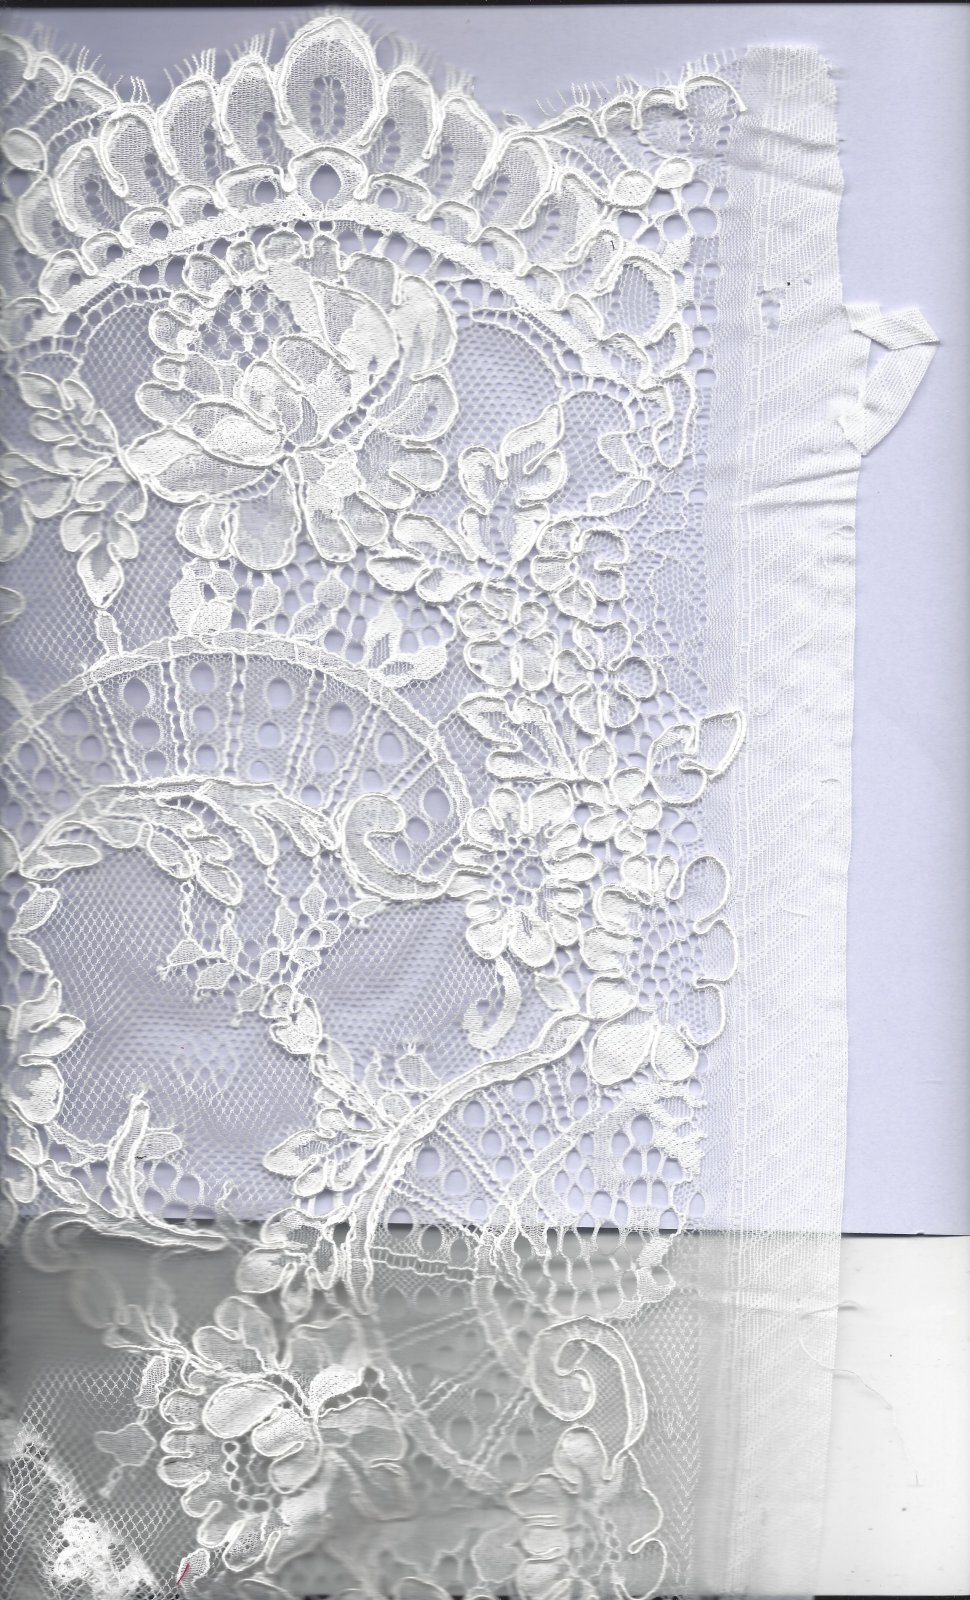 ACC 52556/3 CORDED LACE